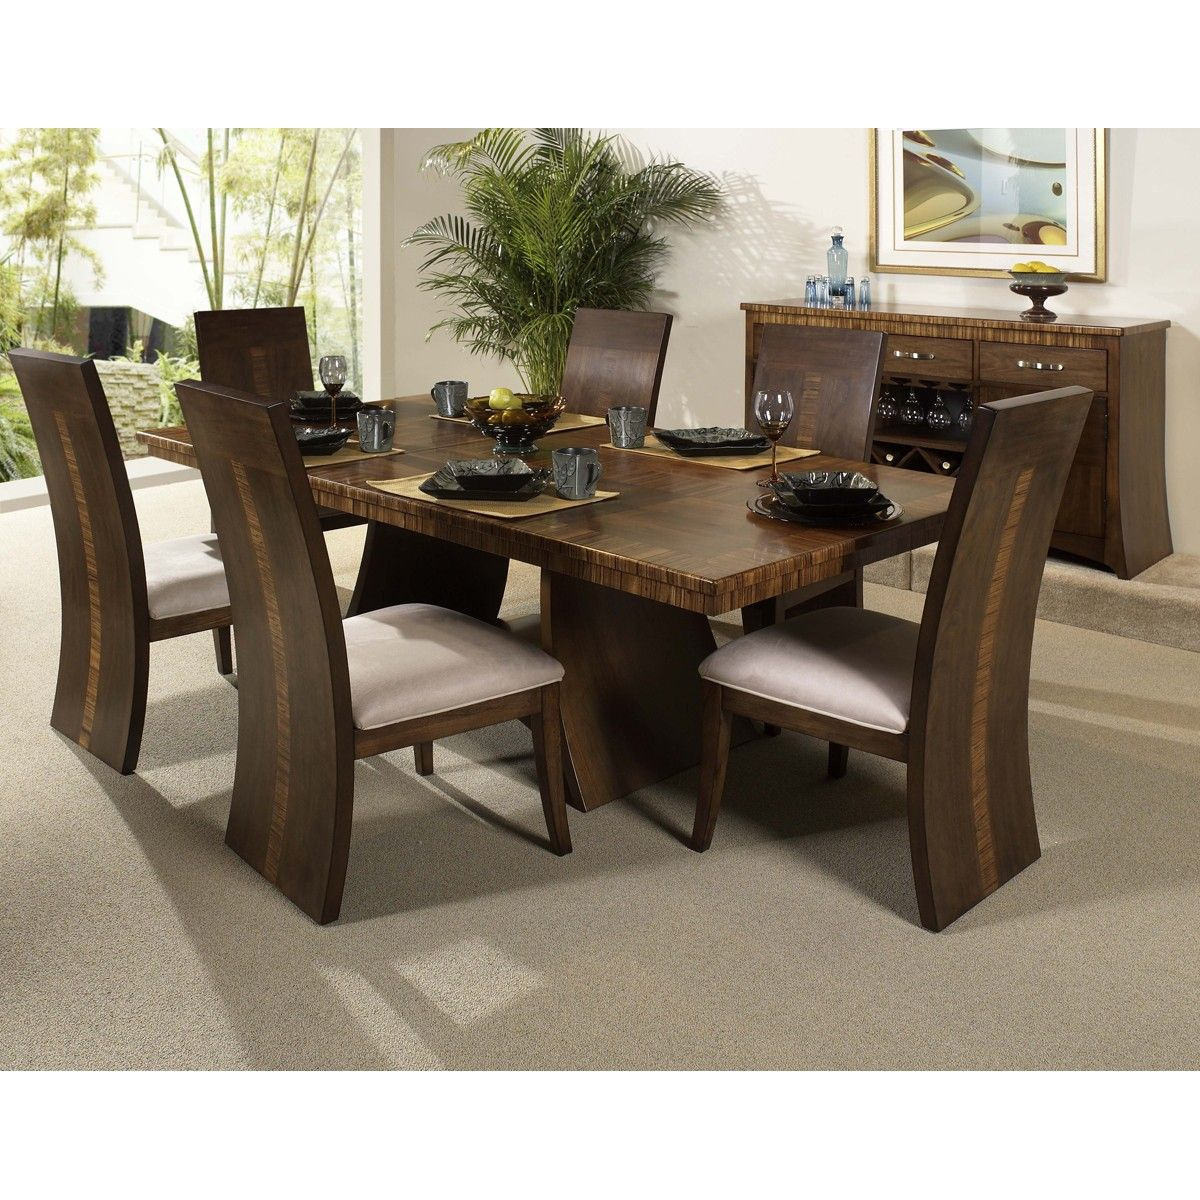 Somerton Dwelling Milan Double Pedestal Dining Table